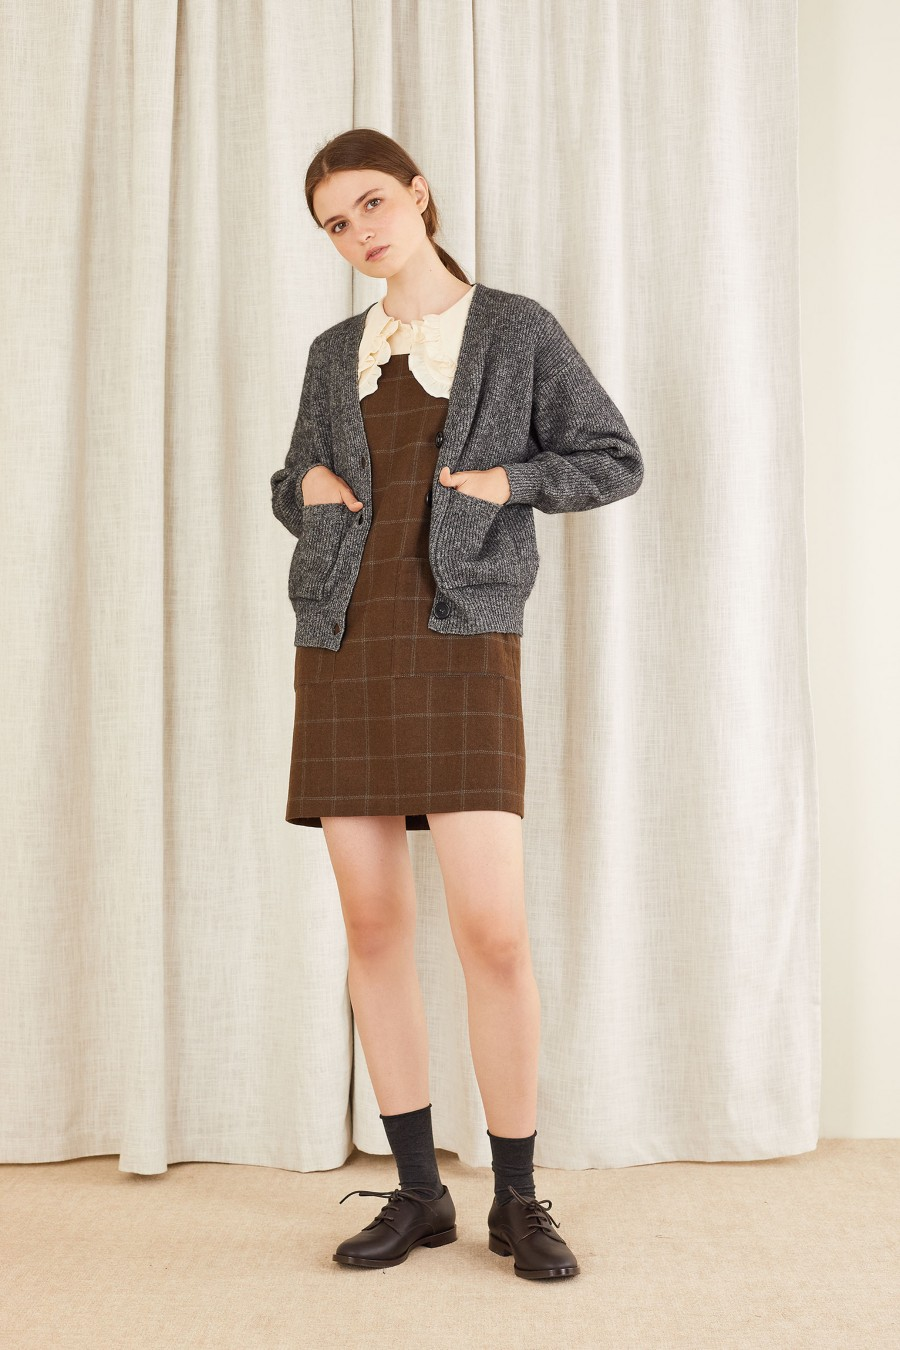 bon ton uniform with cardigan